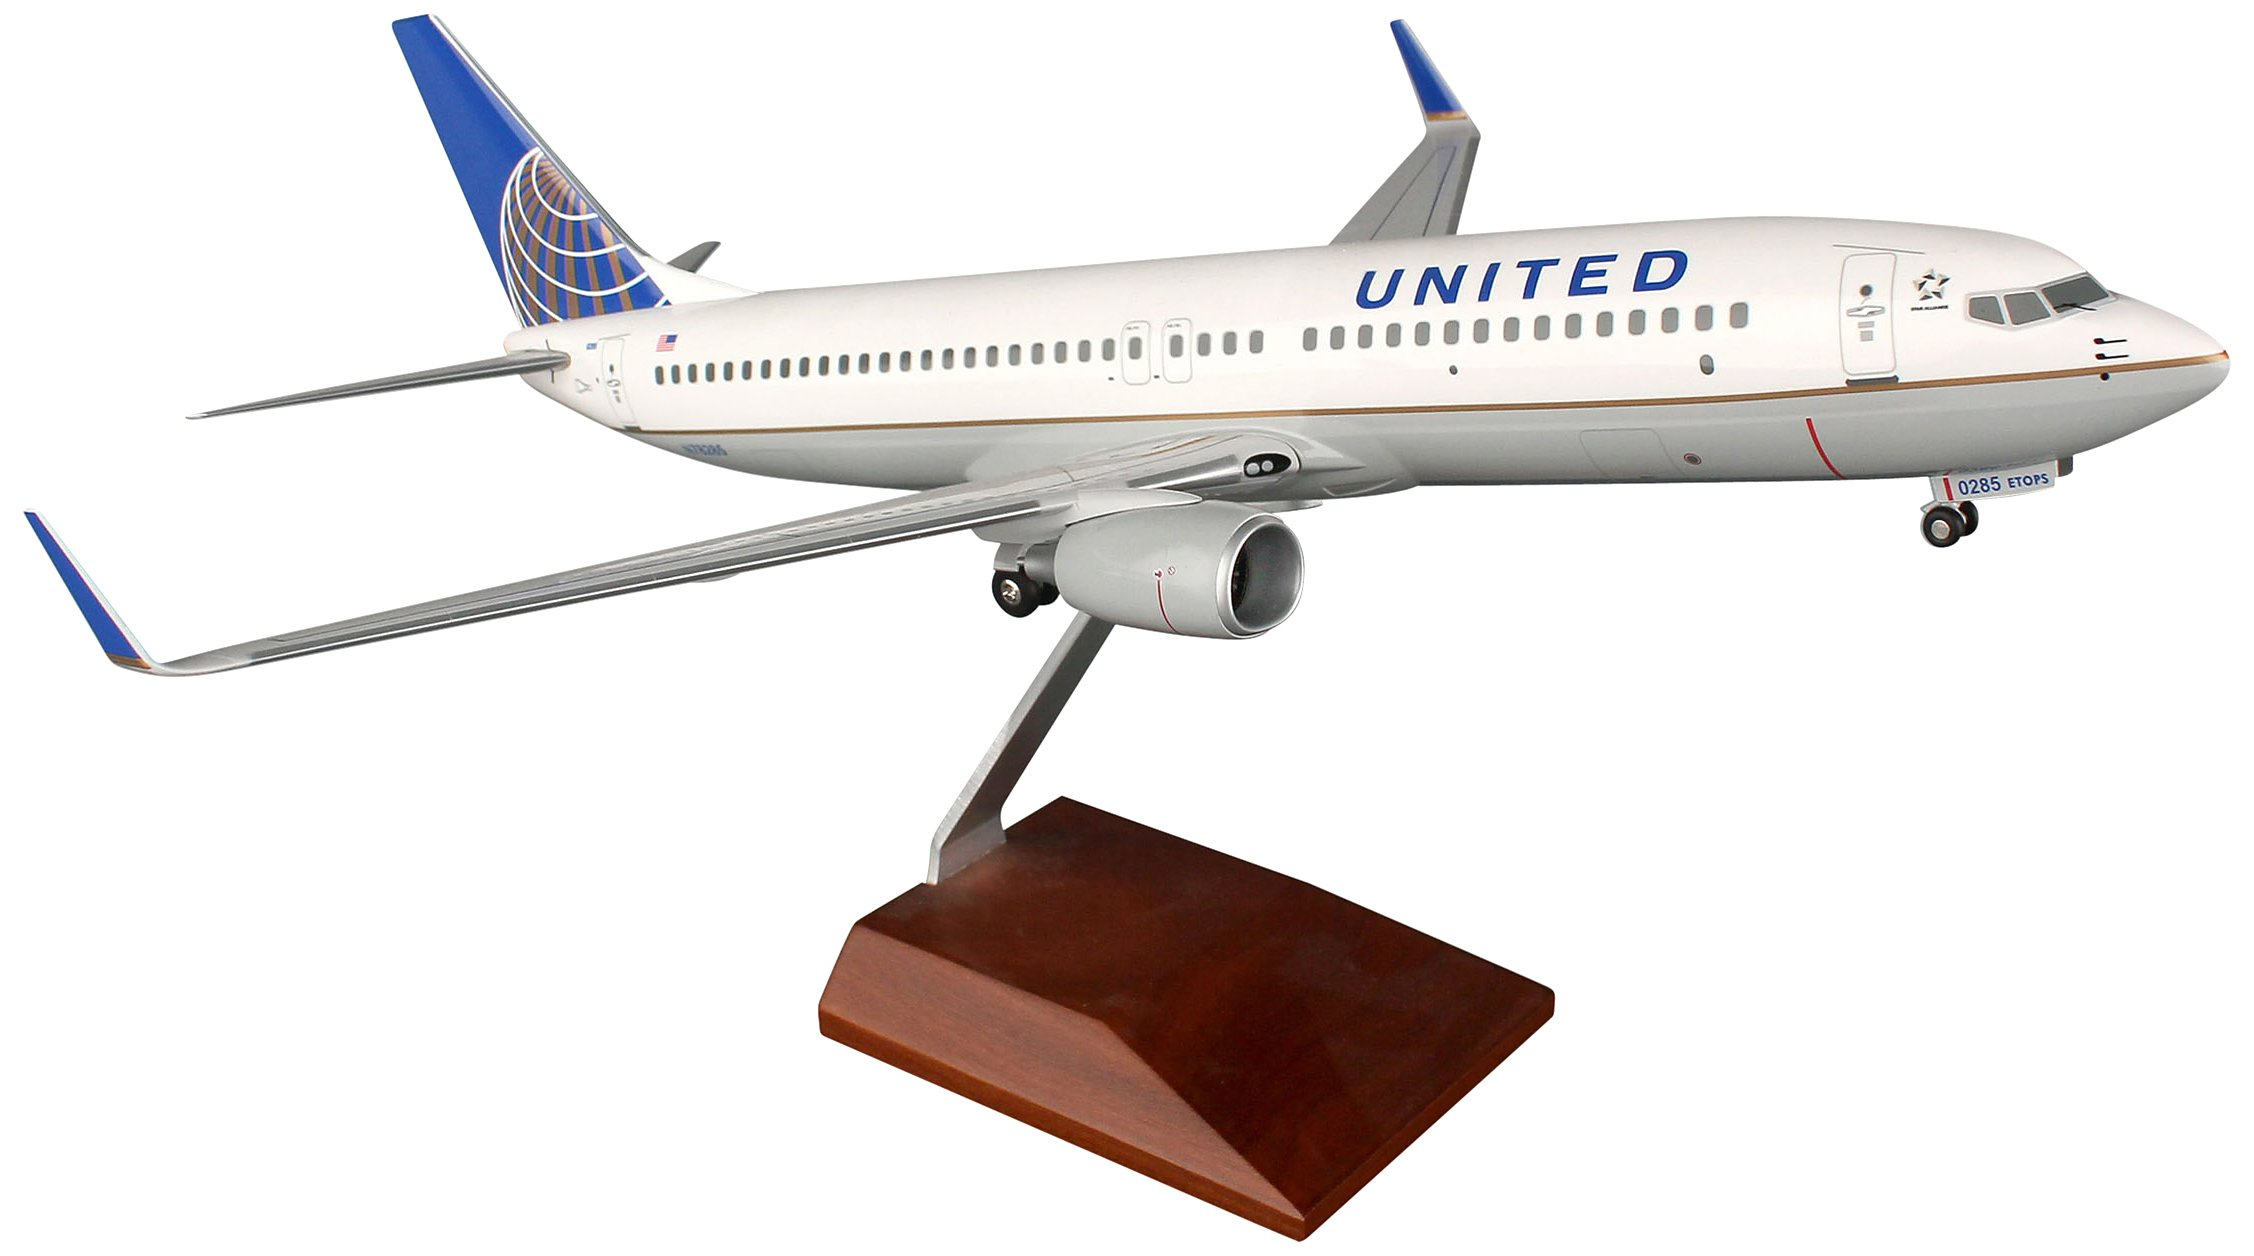 Daron Skymarks United 737-800 Post Co Merger Liver Model Kit (1/100 Scale) by Daron (Image #1)